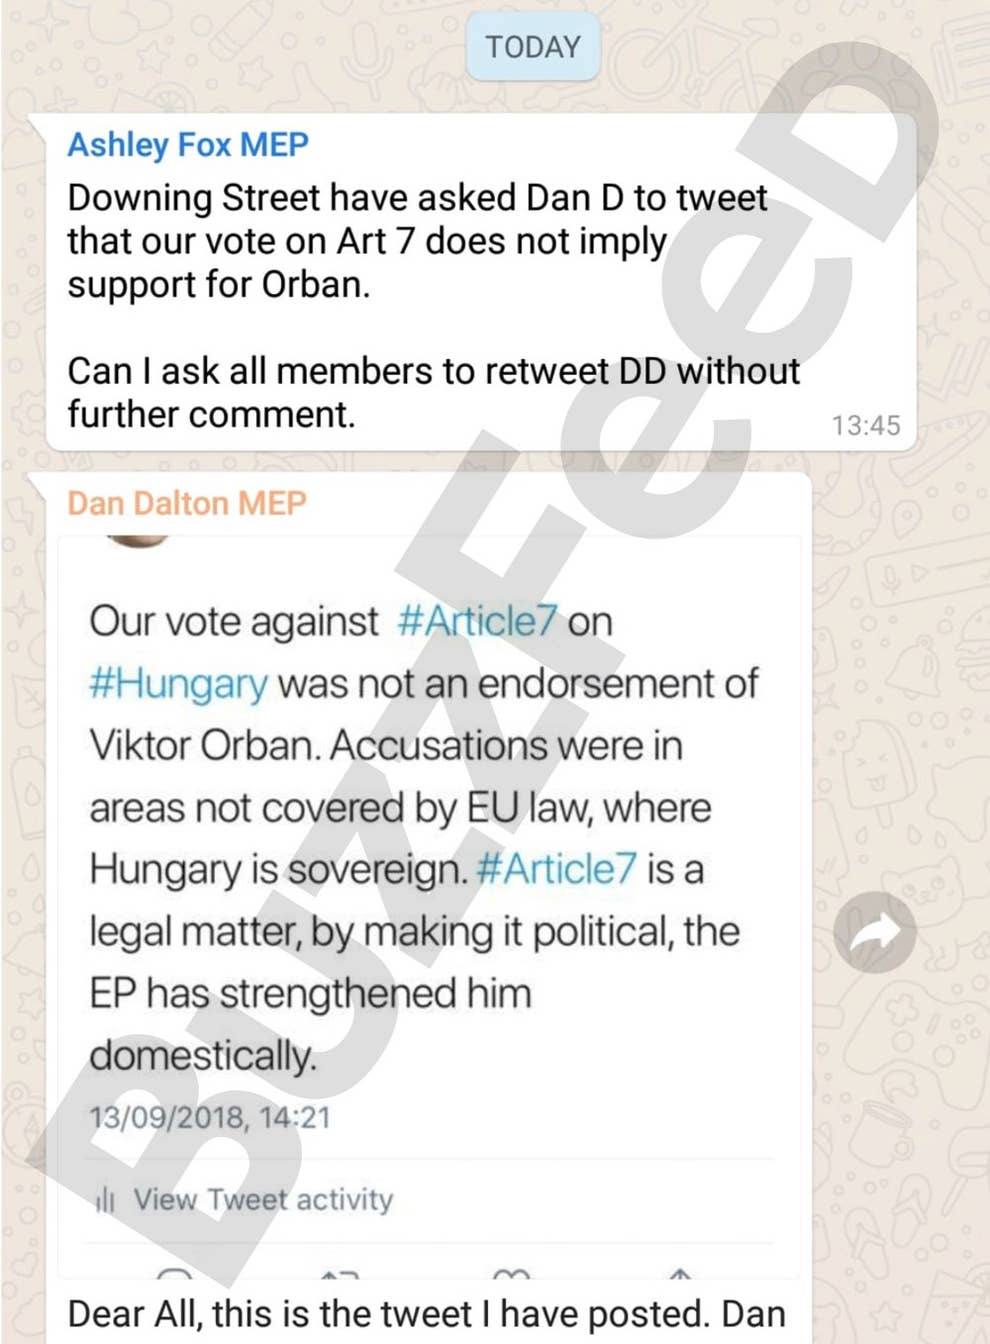 Leaked WhatsApps Show Downing Street Told Tory MEPs To Distance